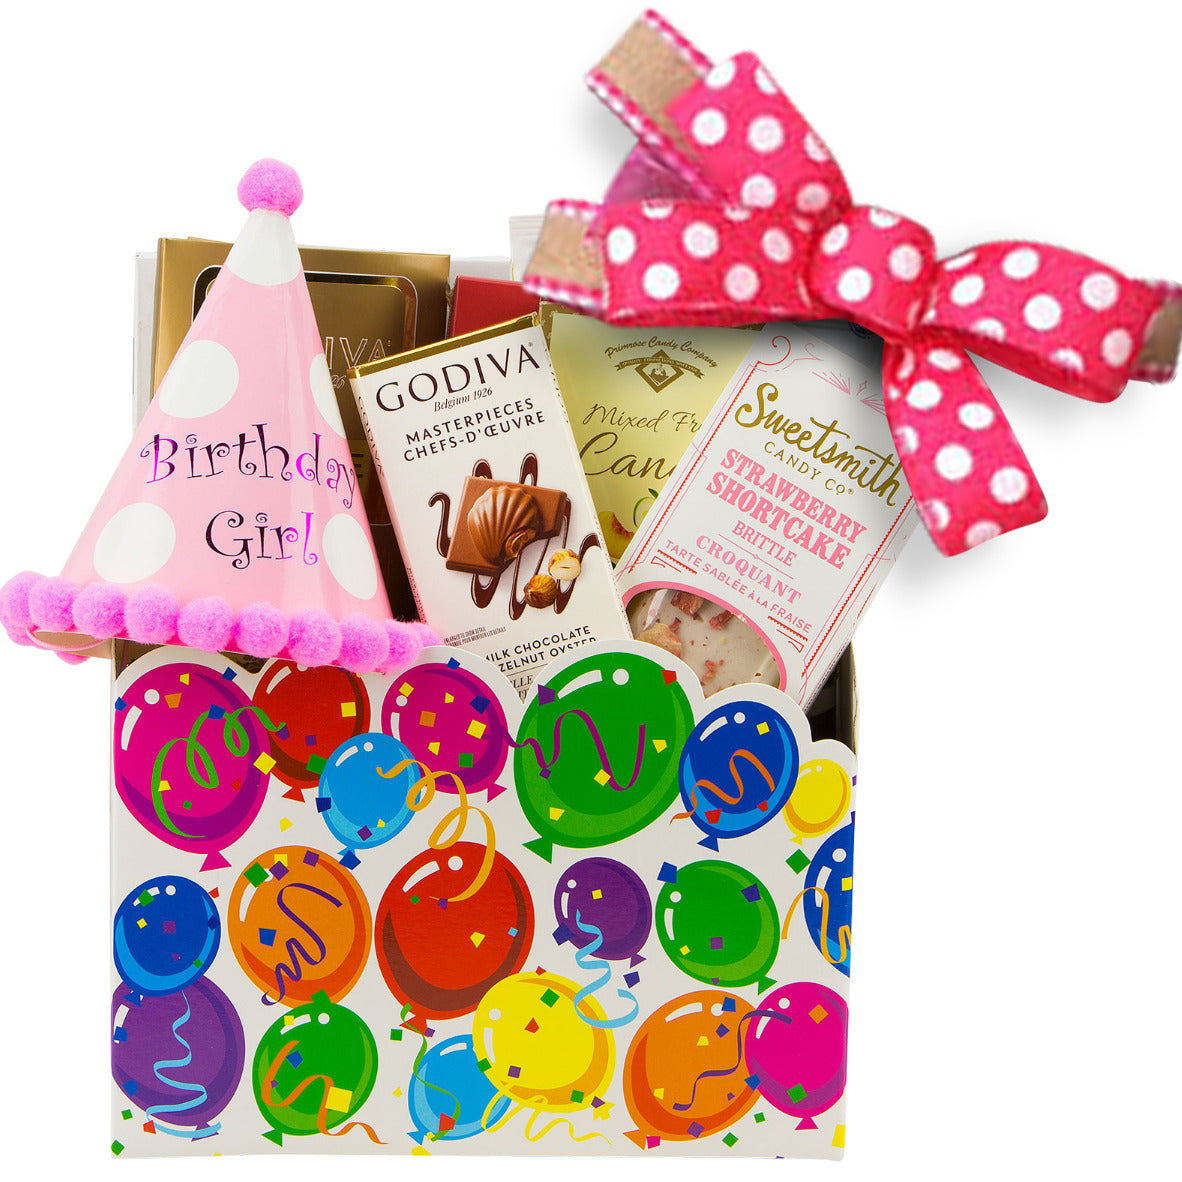 Birthday Girl Gift Basket